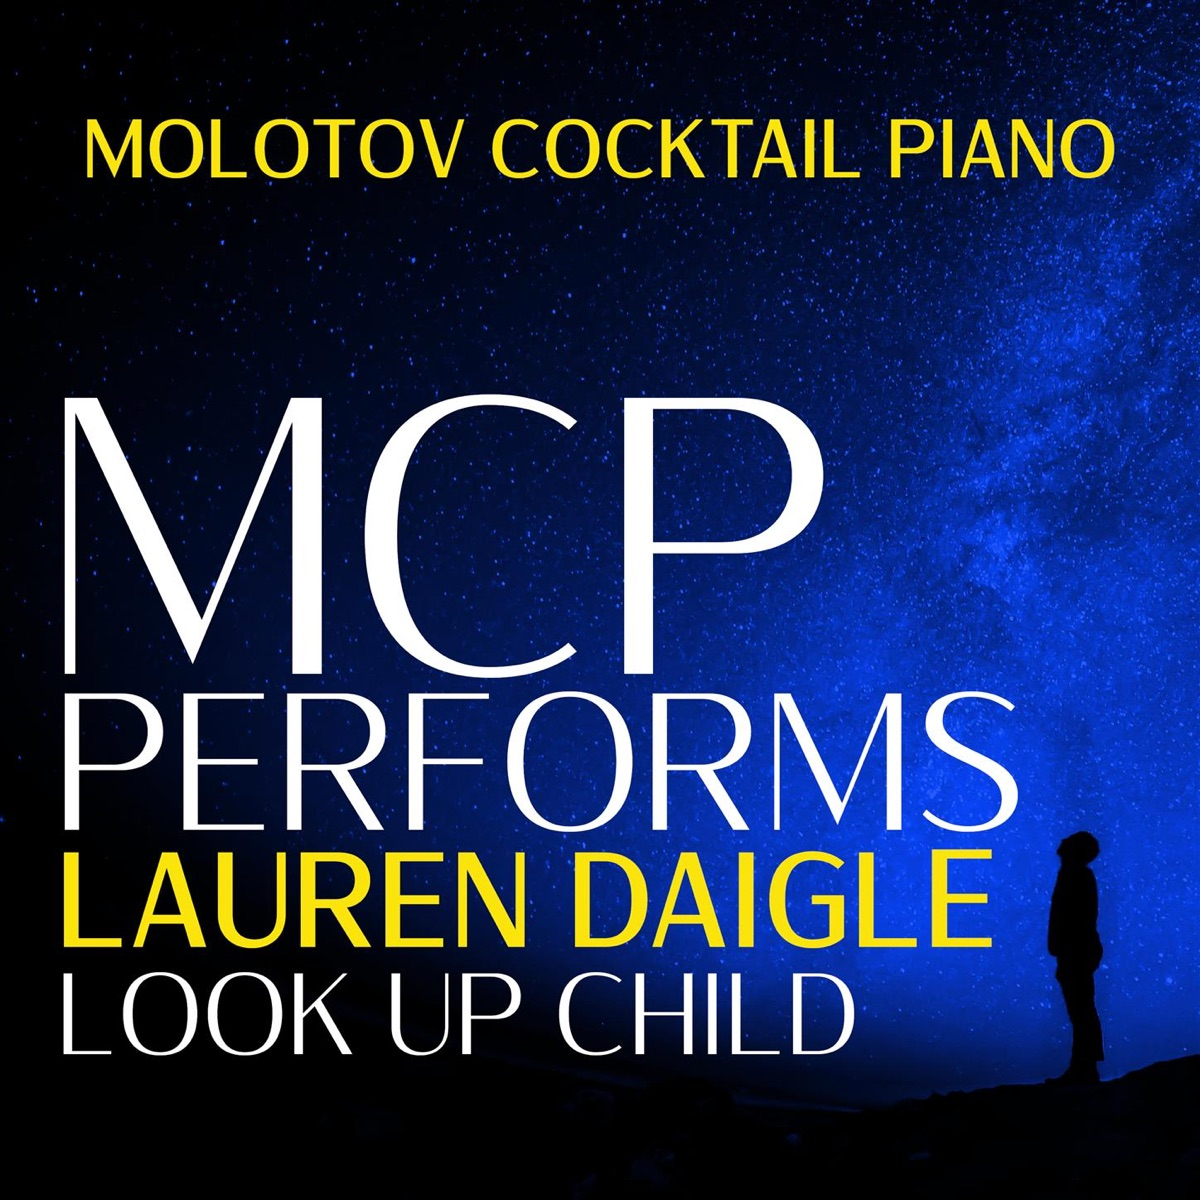 MCP Performs Lauren Daigle Look Up Child Instrumental Molotov Cocktail Piano CD cover